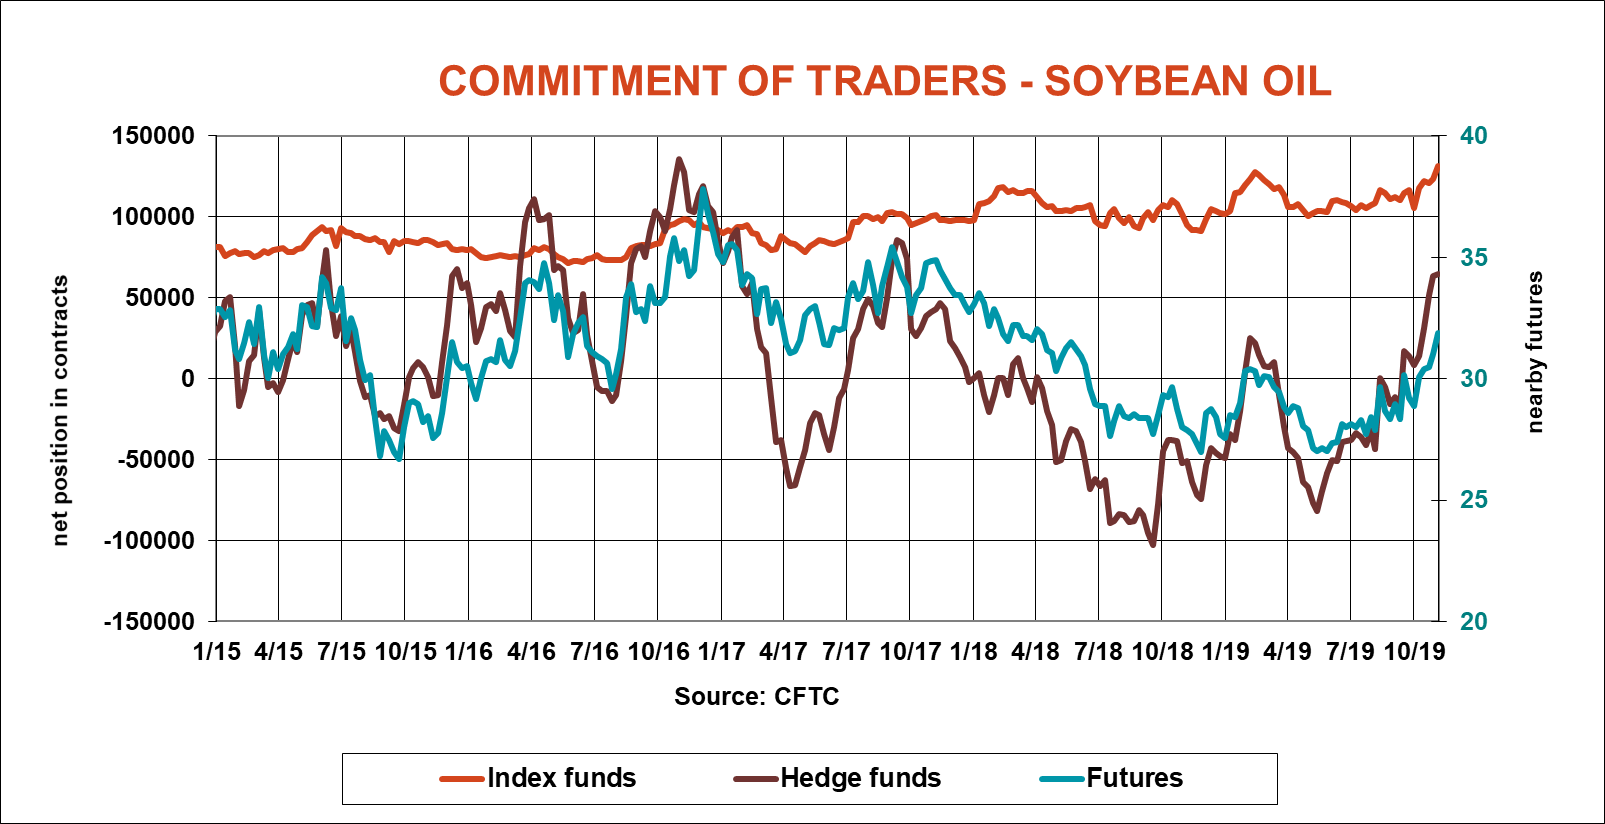 commitment-traders-soybean-oil-cftc-110819.png